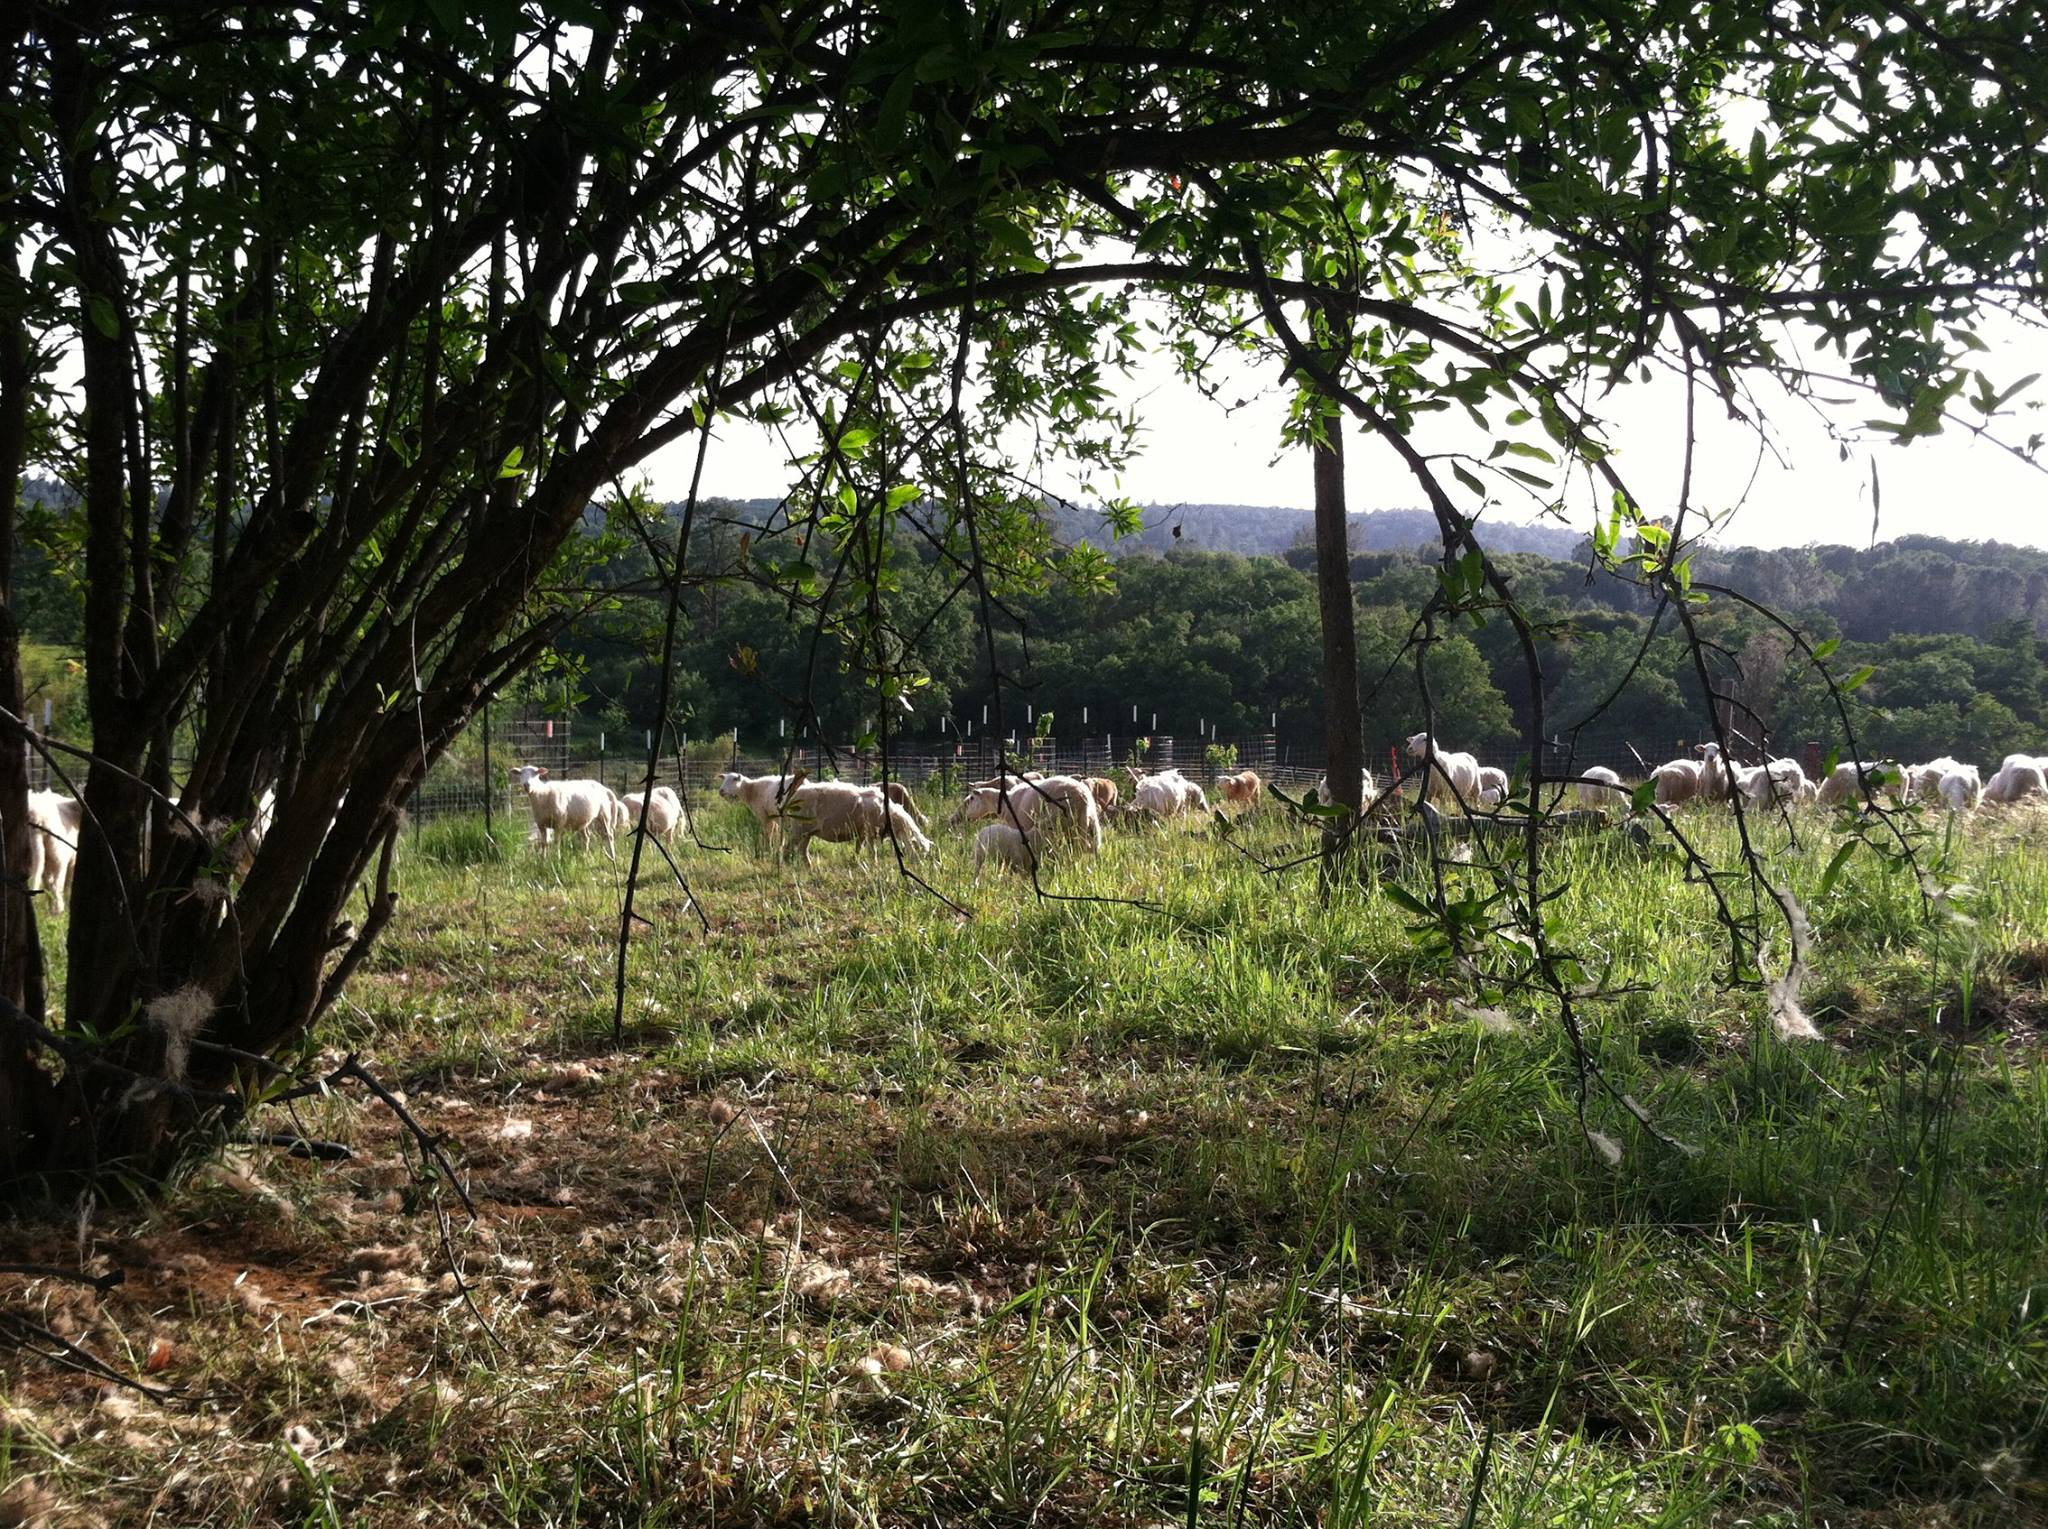 Grazing sheep, Fowler Family Farm